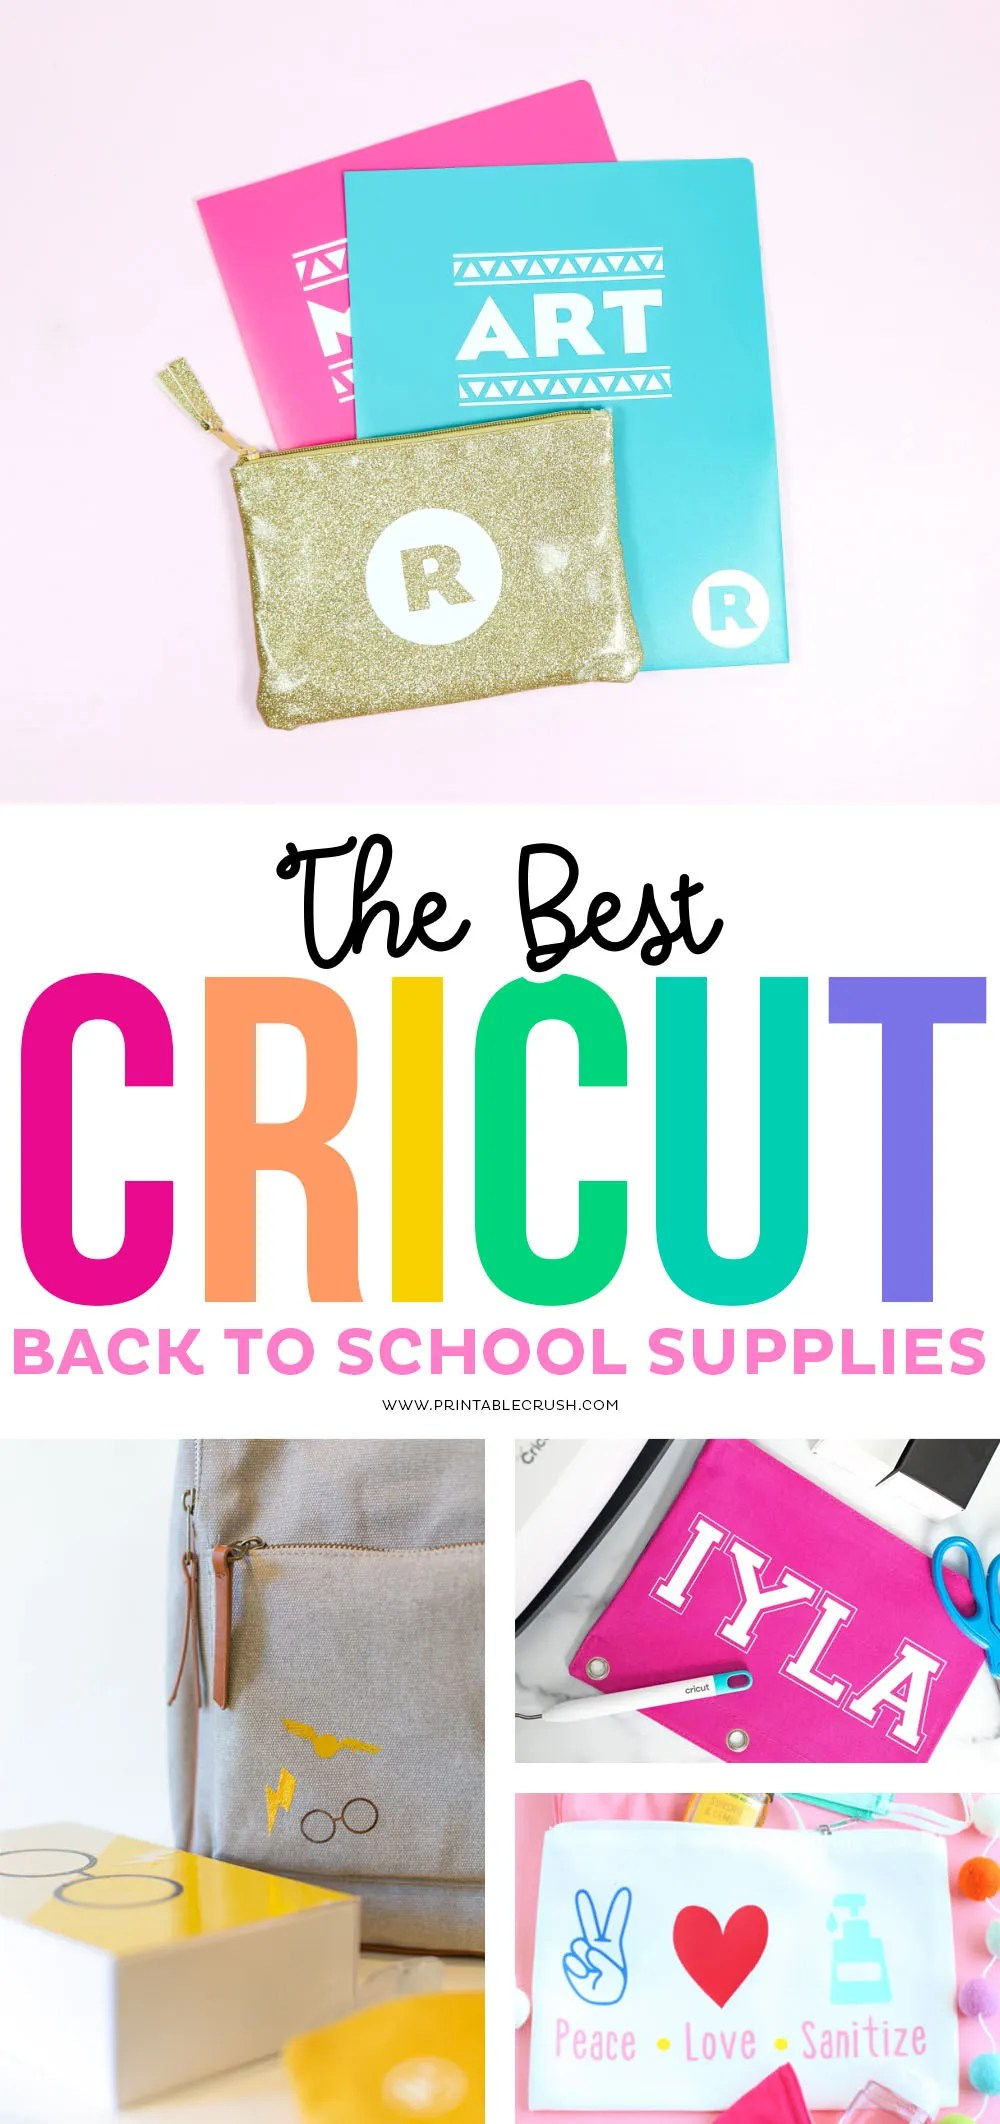 The BEST Cricut Personalized Back to School Supplies - Printable Crush